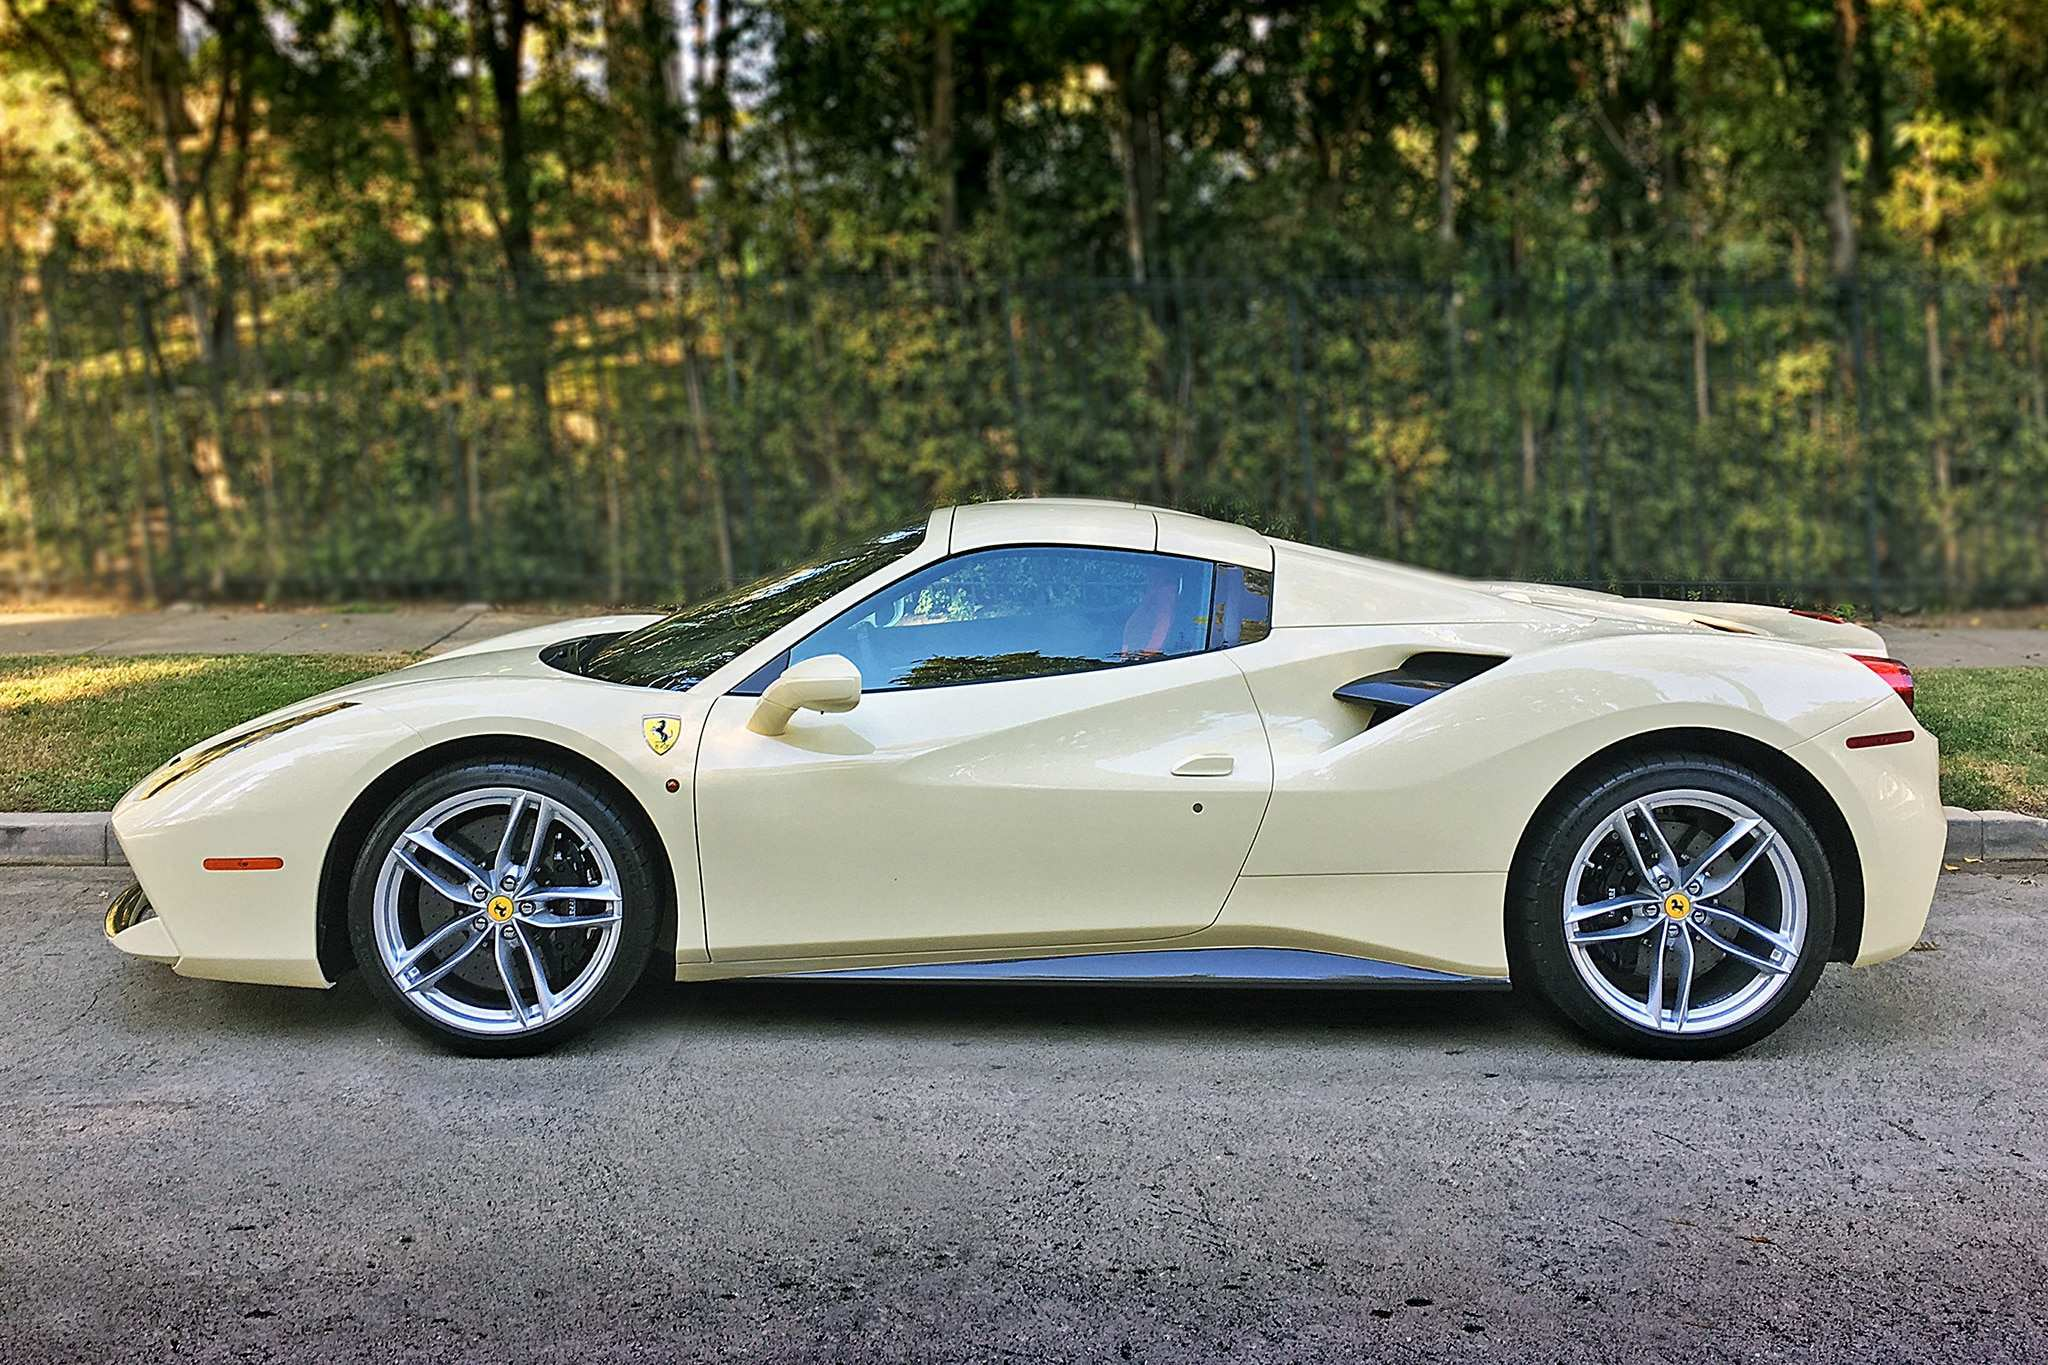 77 Great 2020 Ferrari 588 Redesign for 2020 Ferrari 588